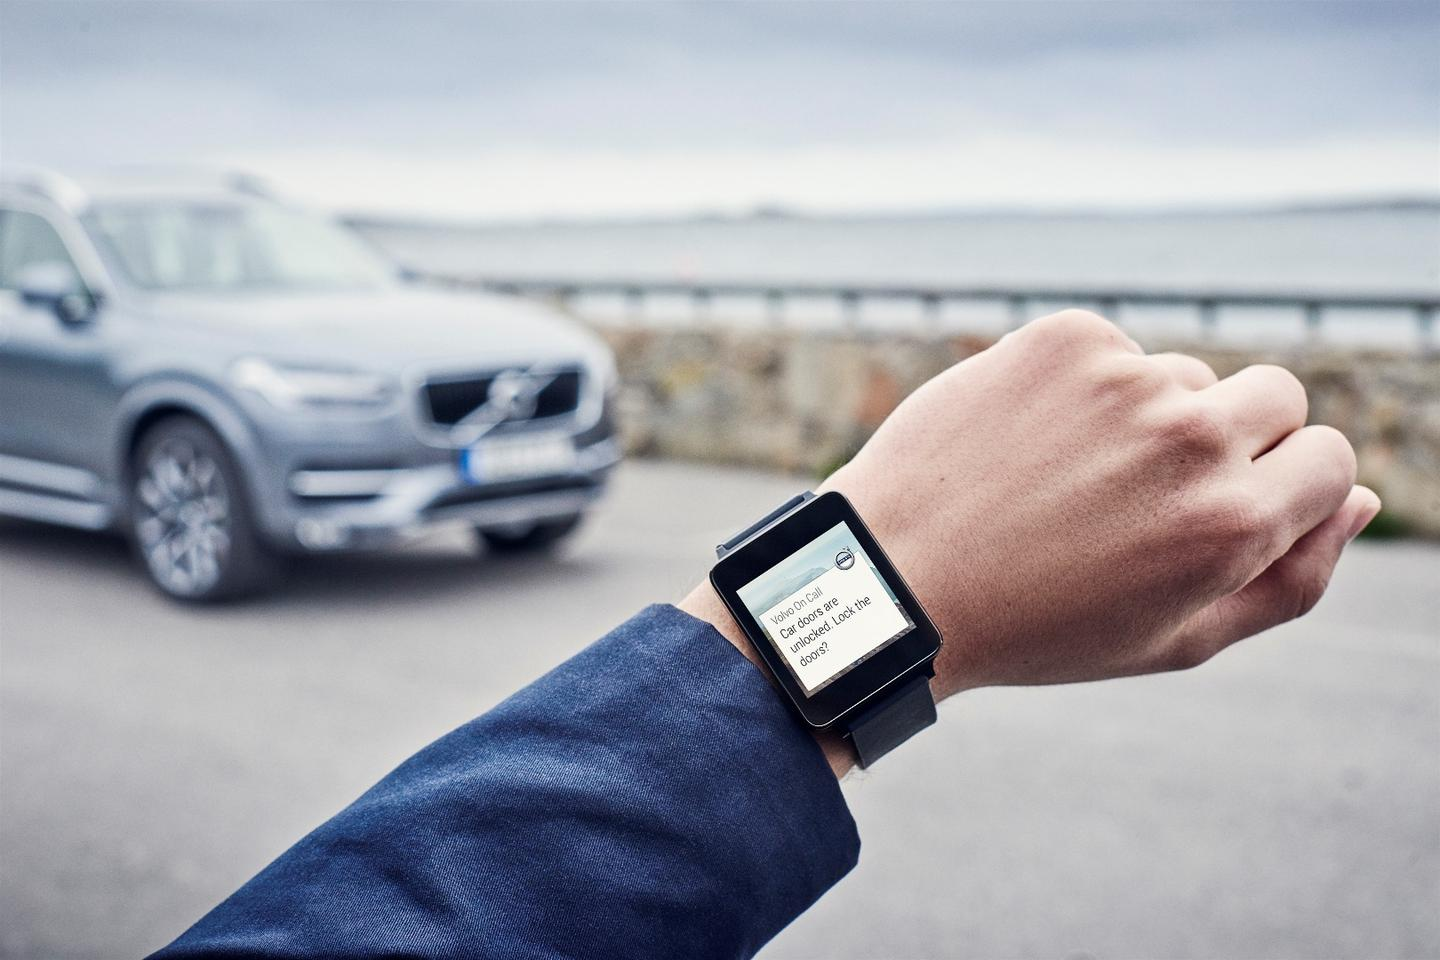 Android Wear is now supported by Volvo's On Call app